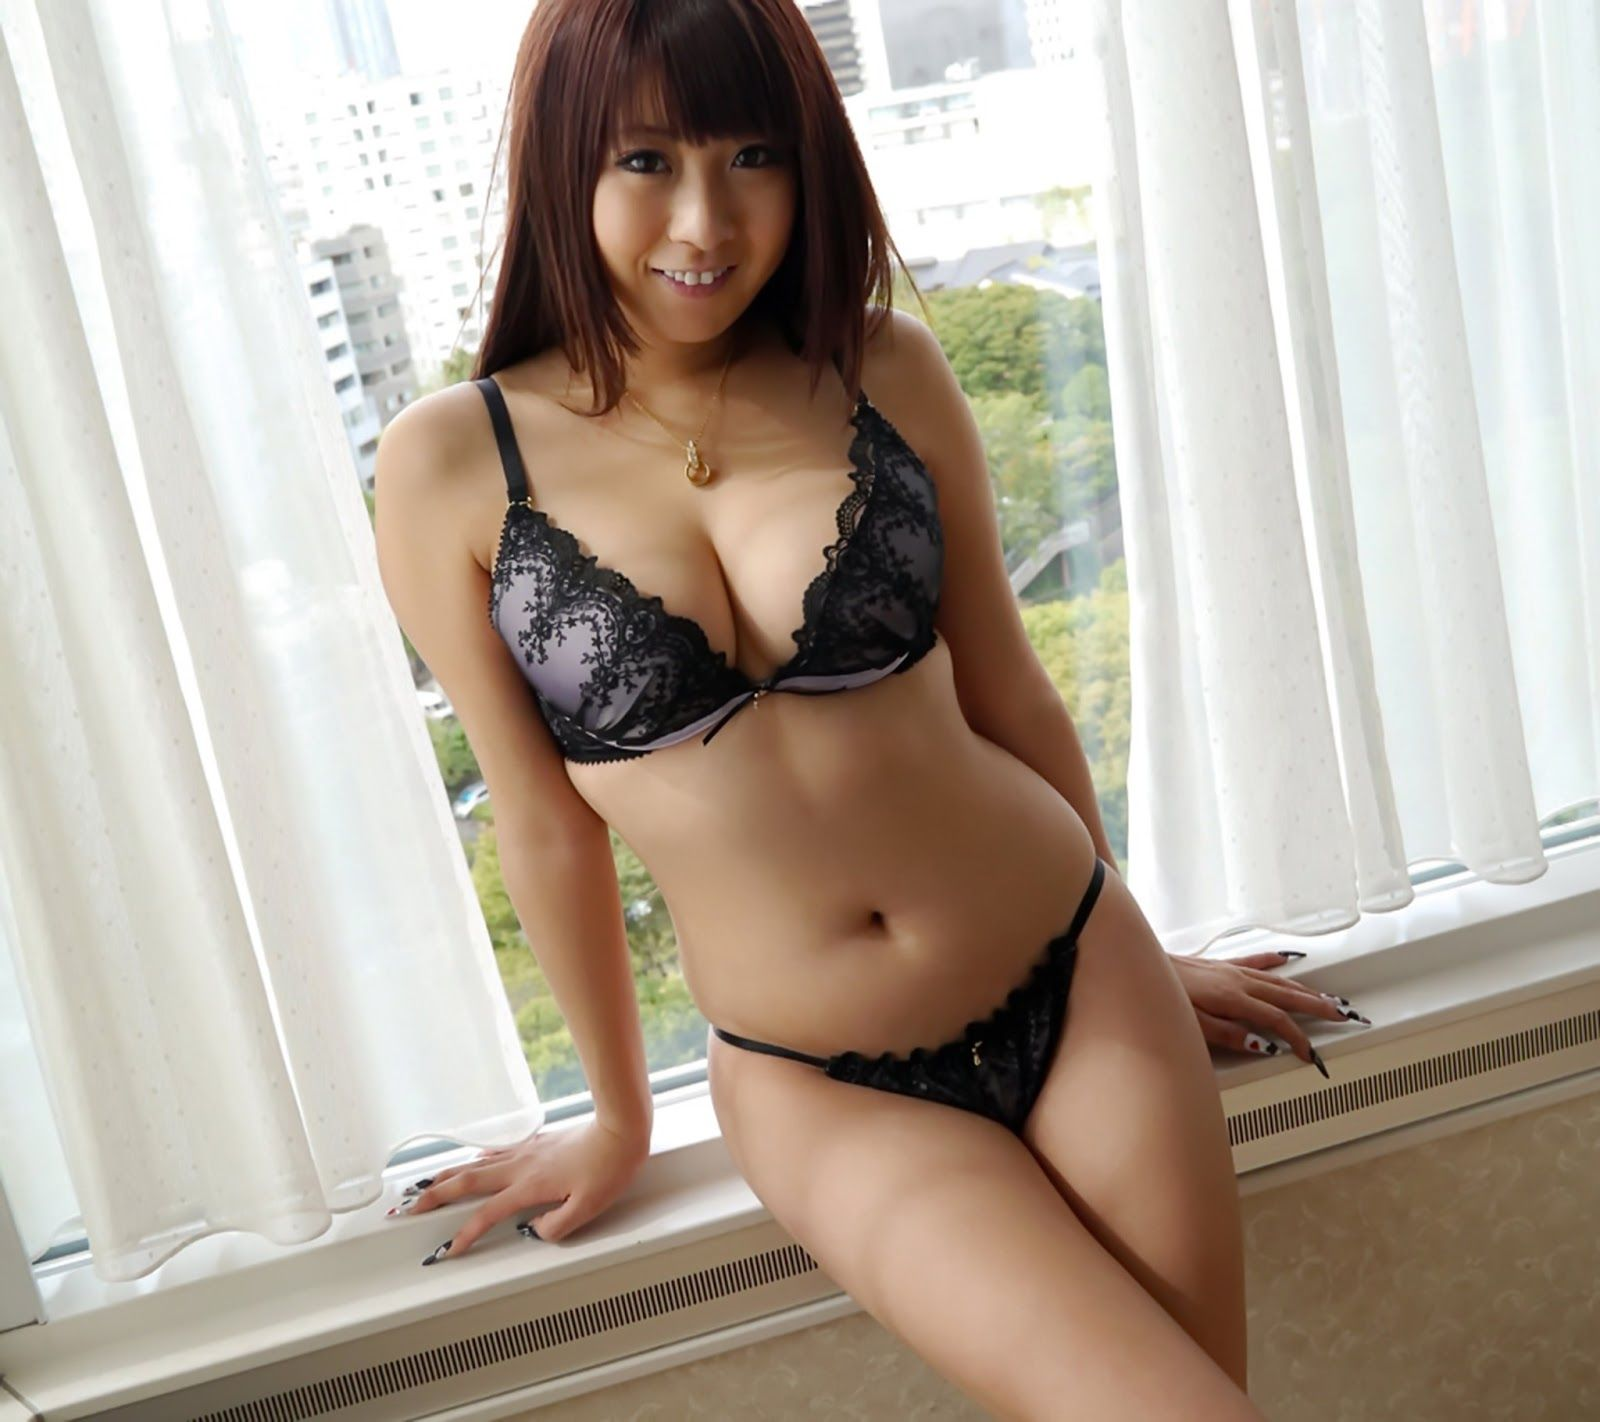 yuma asami no uncensored | wallpaper sony xperia z | beauty | pinterest